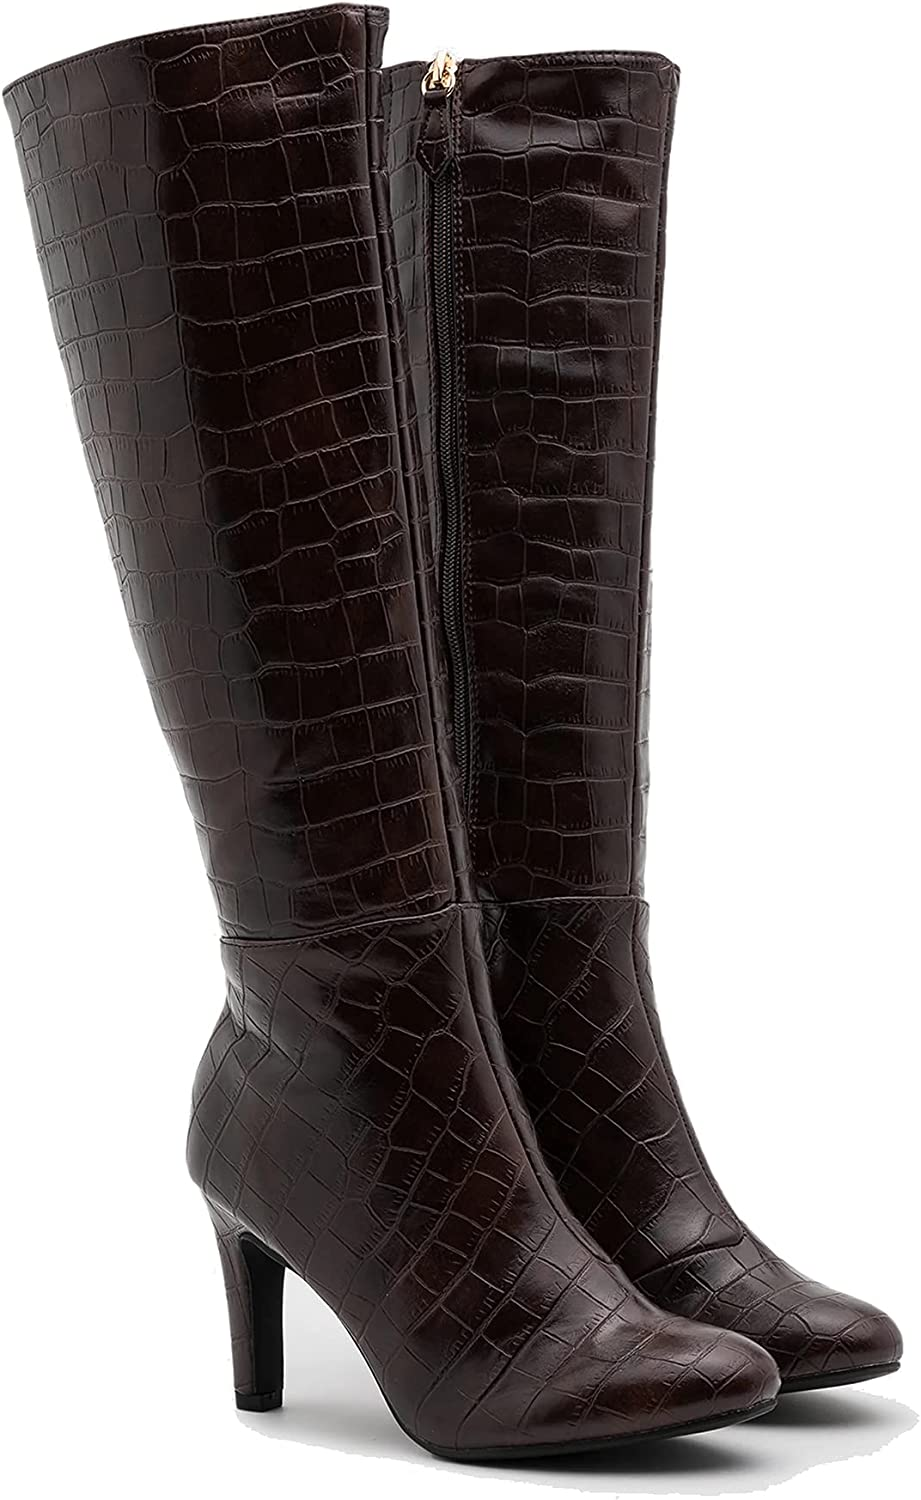 LEHOOR Women Stiletto High Heel Boots Suede Round Toe Knee High Boots with Side Zipper Croc-Effect Matte Leather 3 Inch High Heel Sexy Winter Warm Heeled Boots Size 4-13 M US